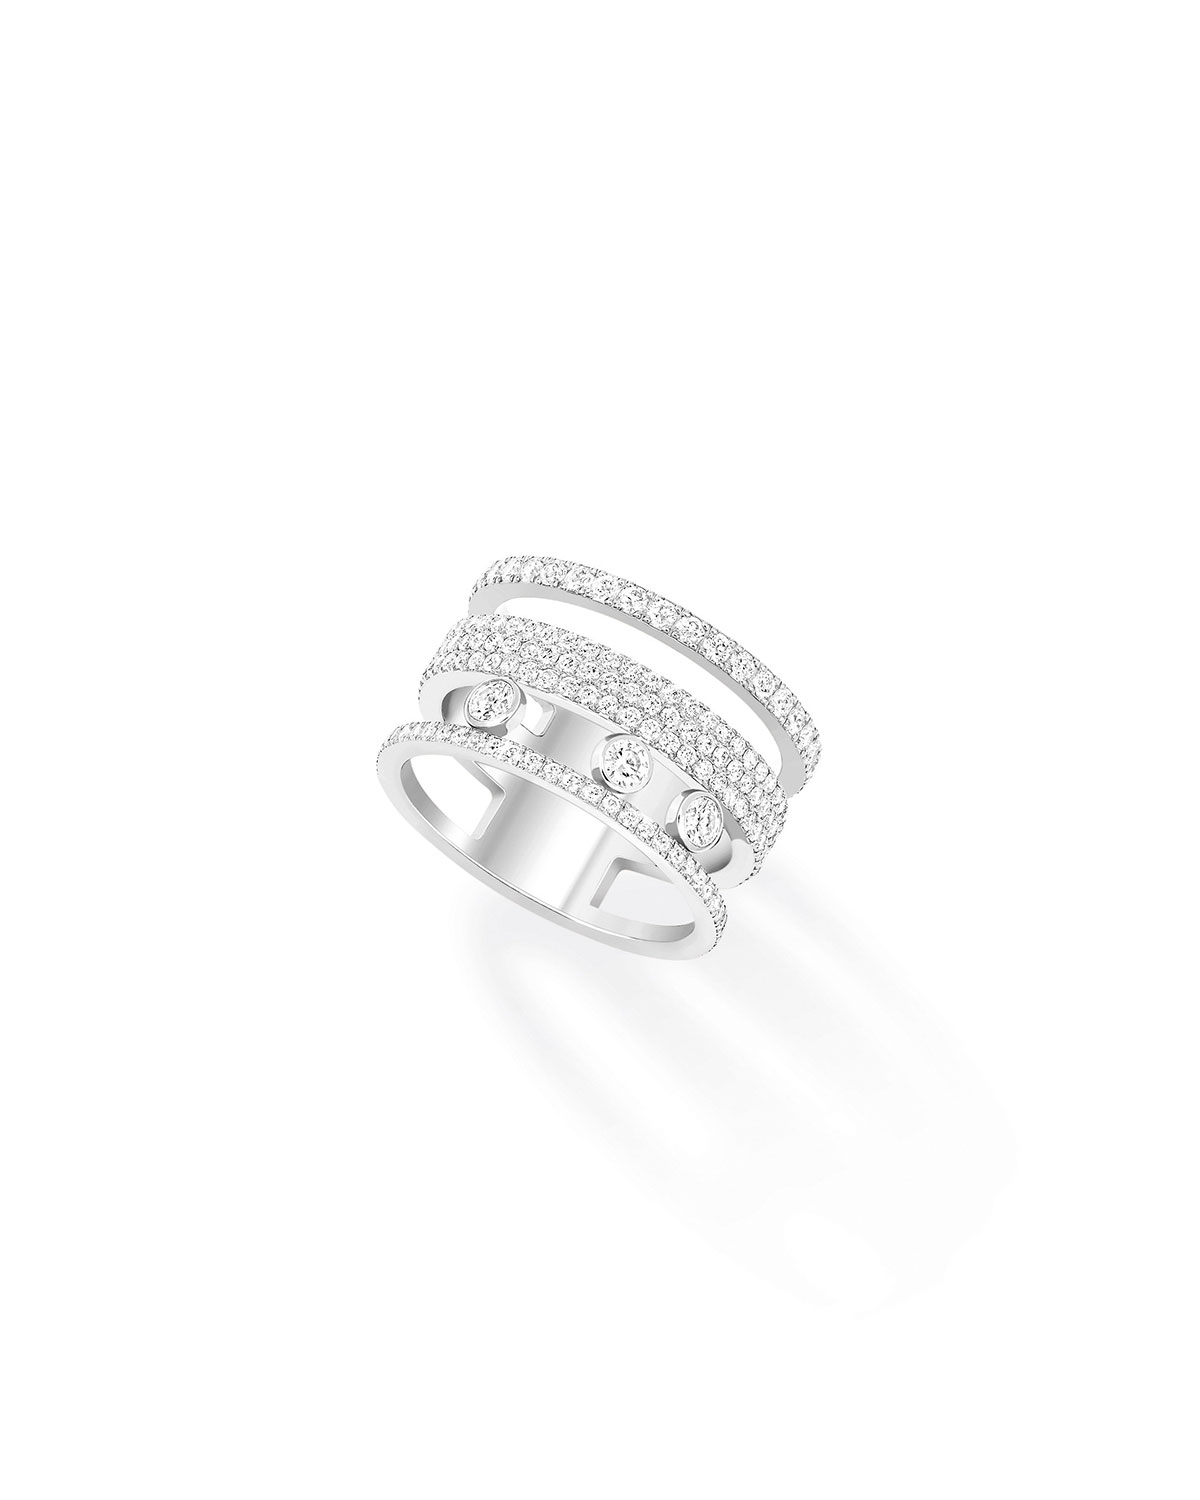 Move Romane Large Pave and 3-Diamond Ring in 18k White Gold